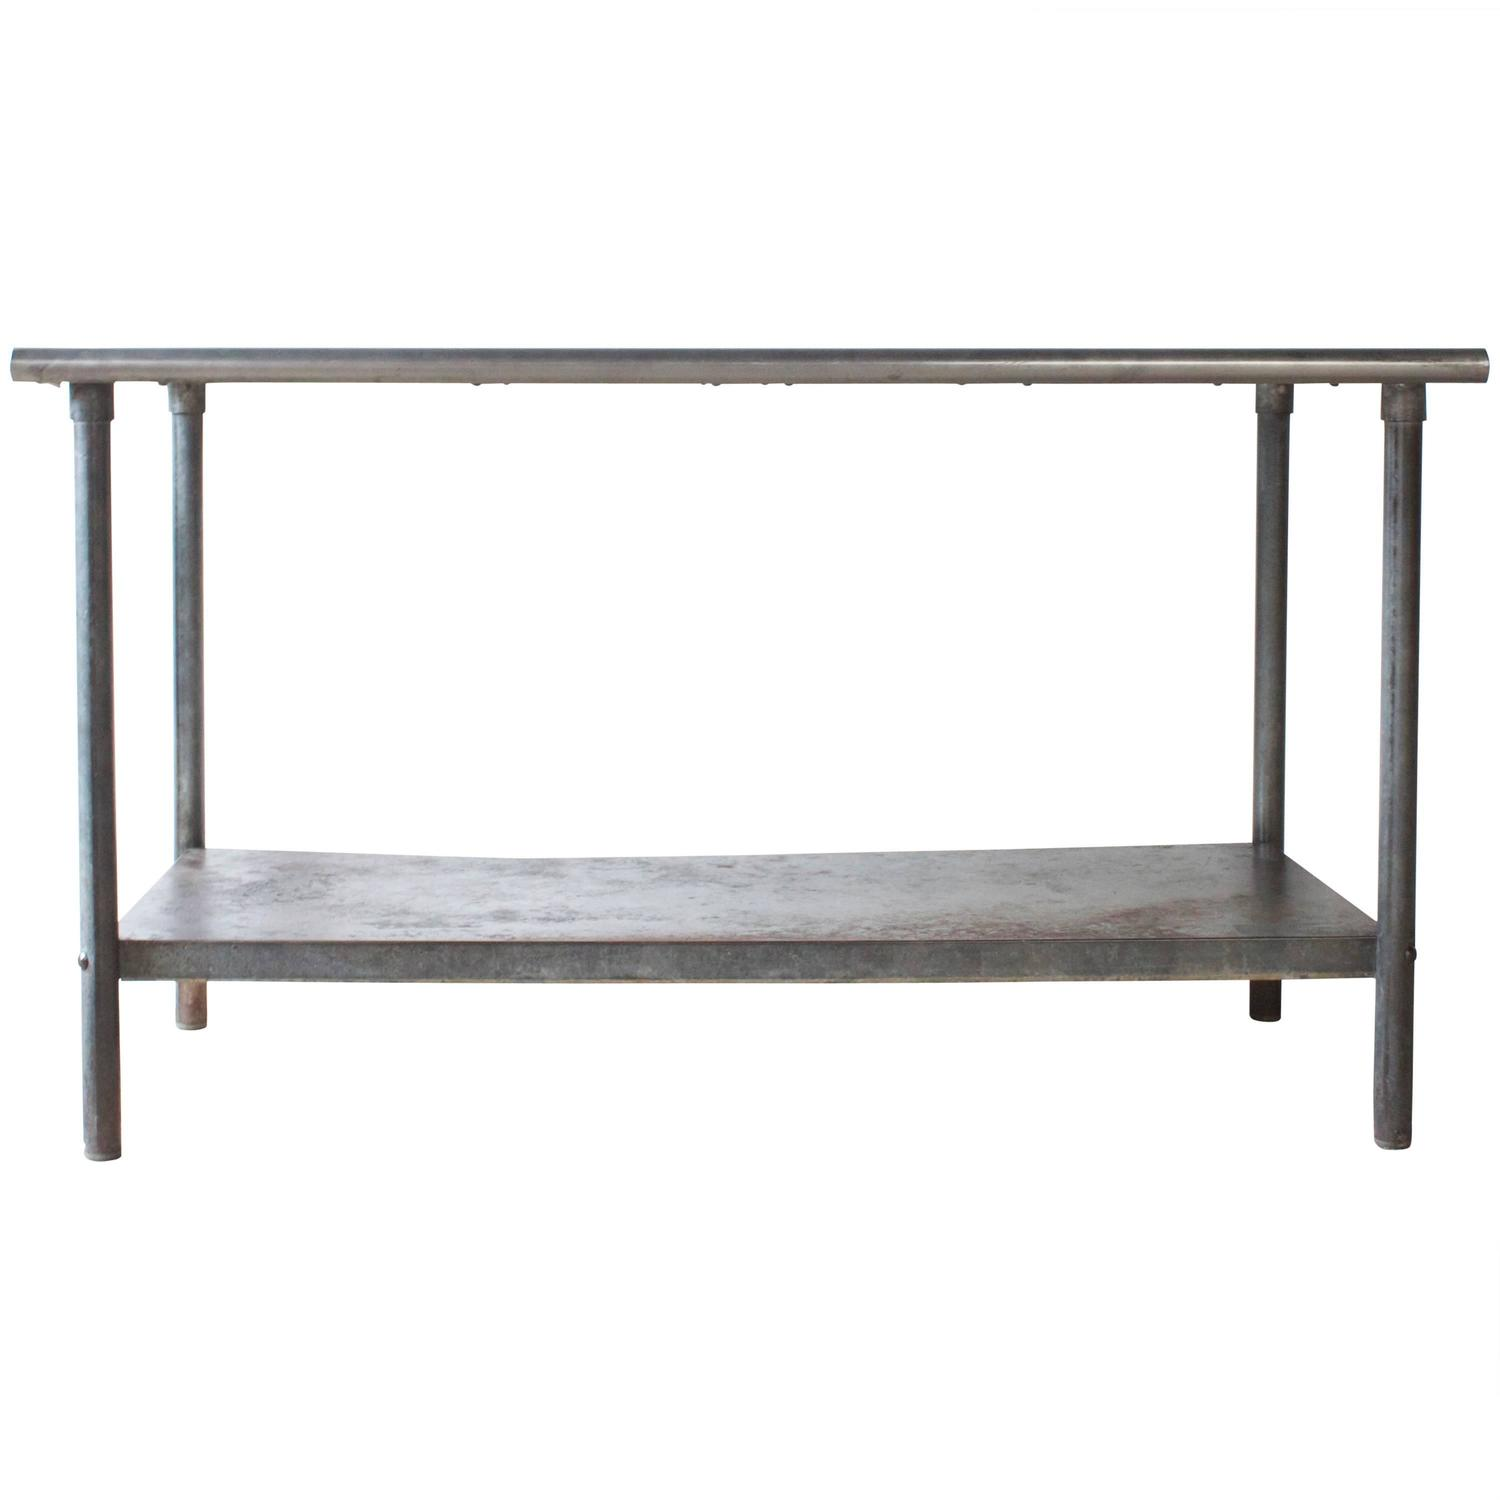 Industrial metal work table at 1stdibs for Furniture work table